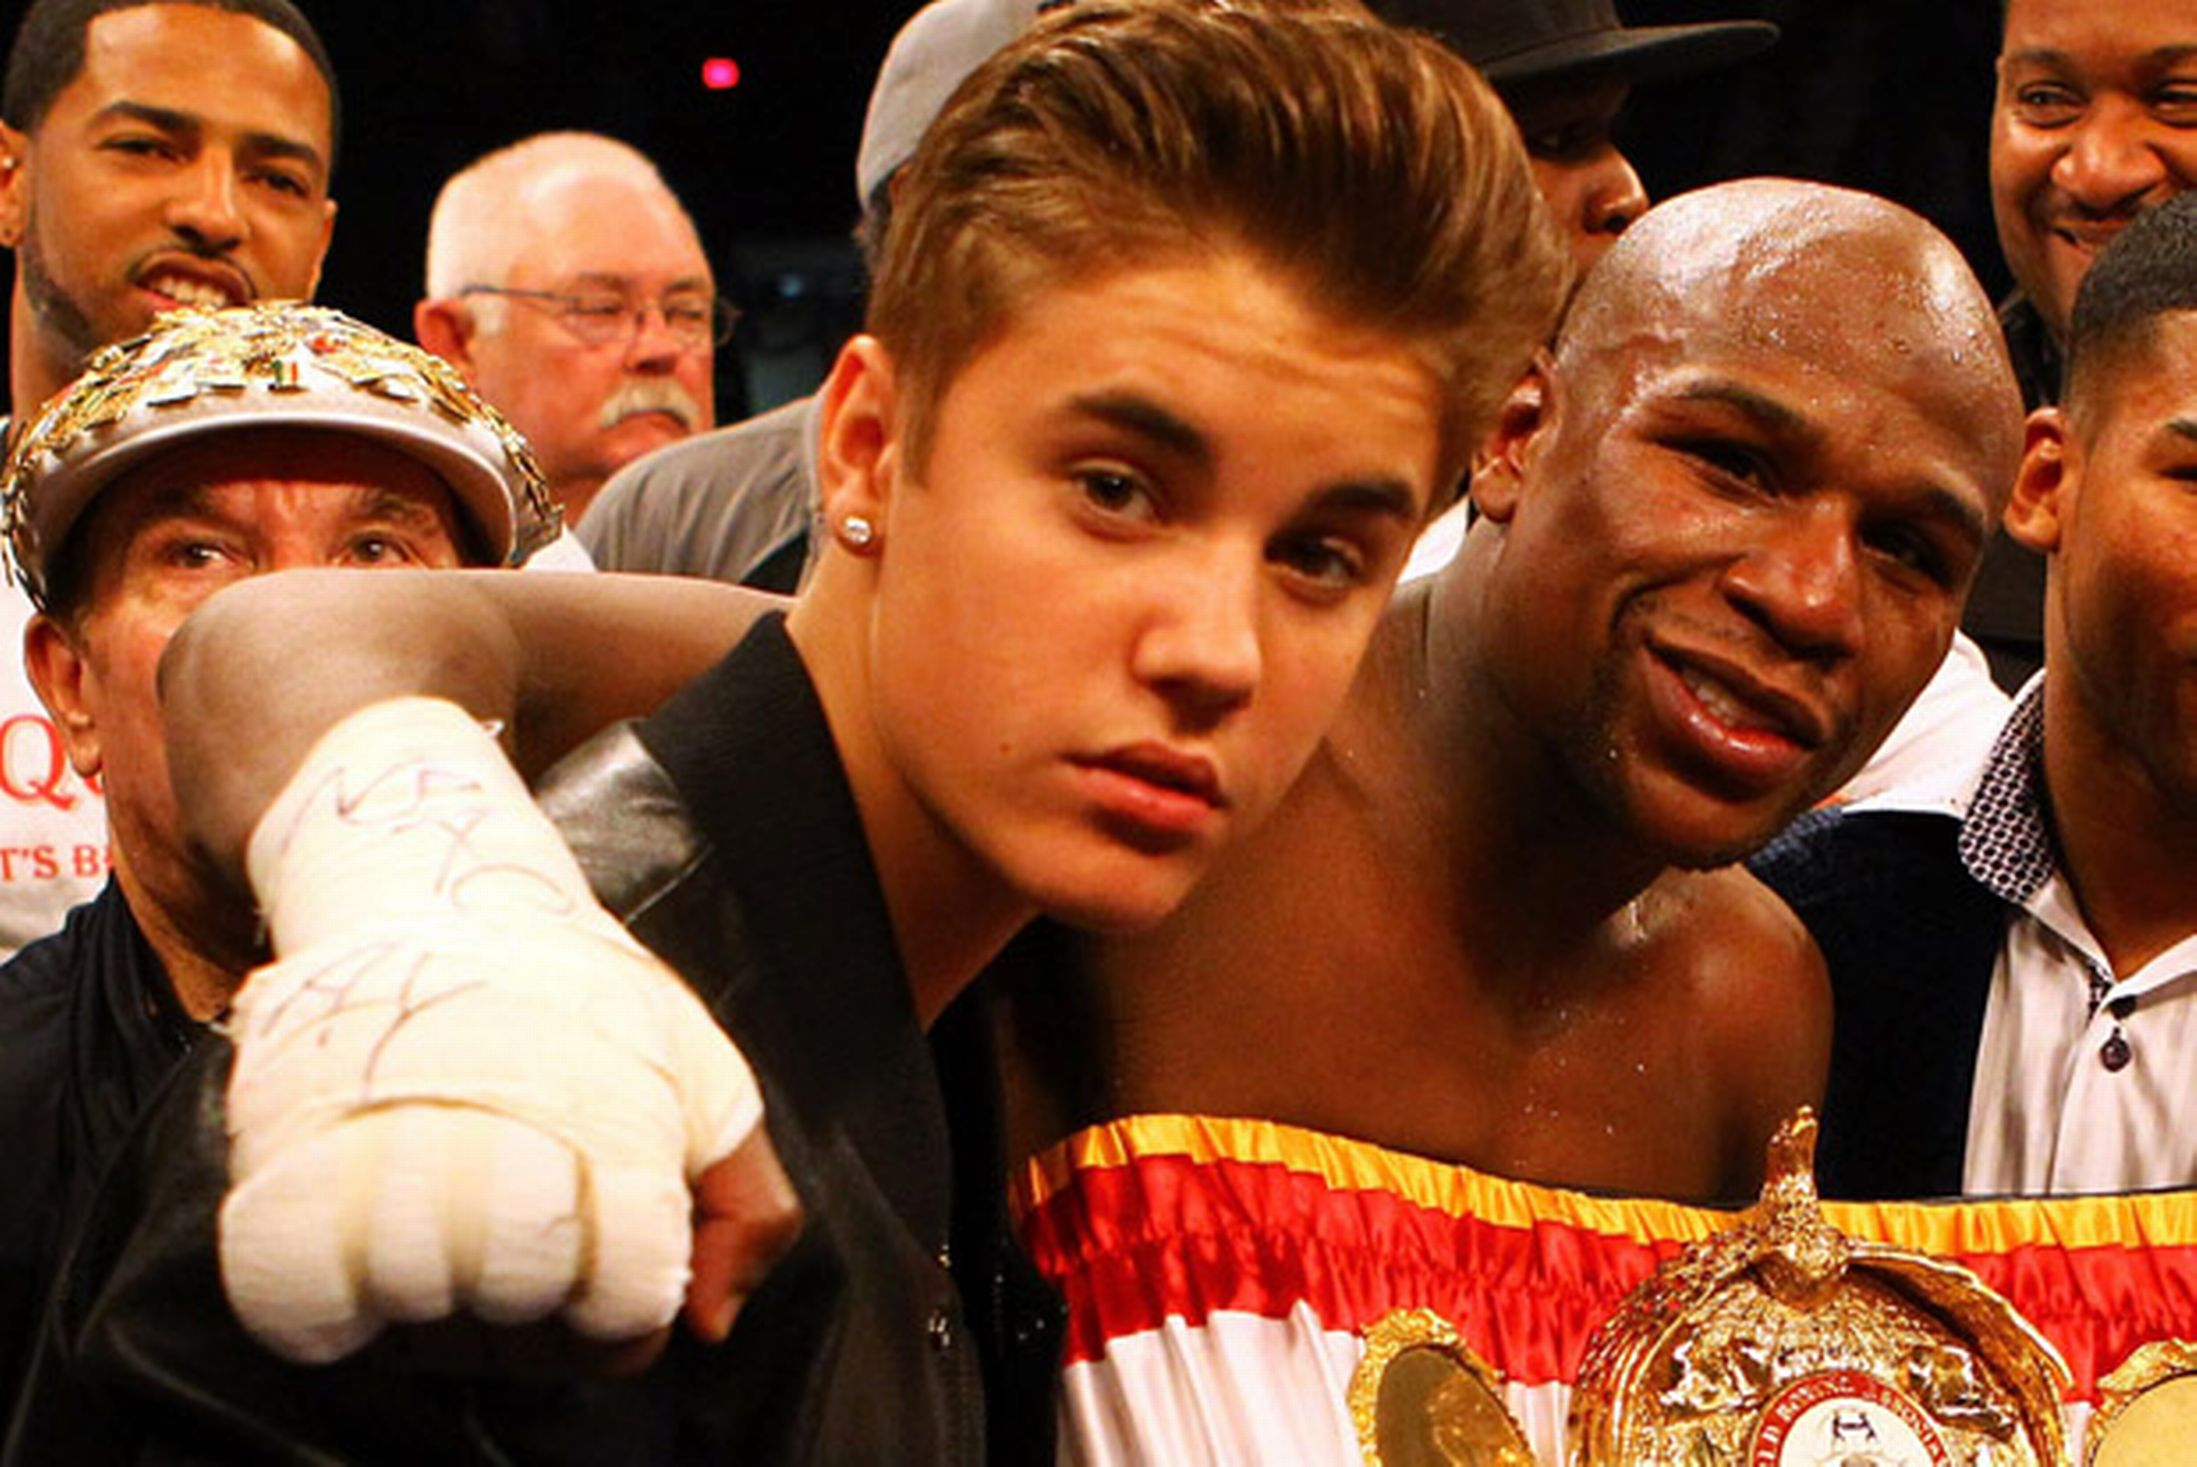 11 floyd mayweather with justin bieber - sports racists (racism in sports)